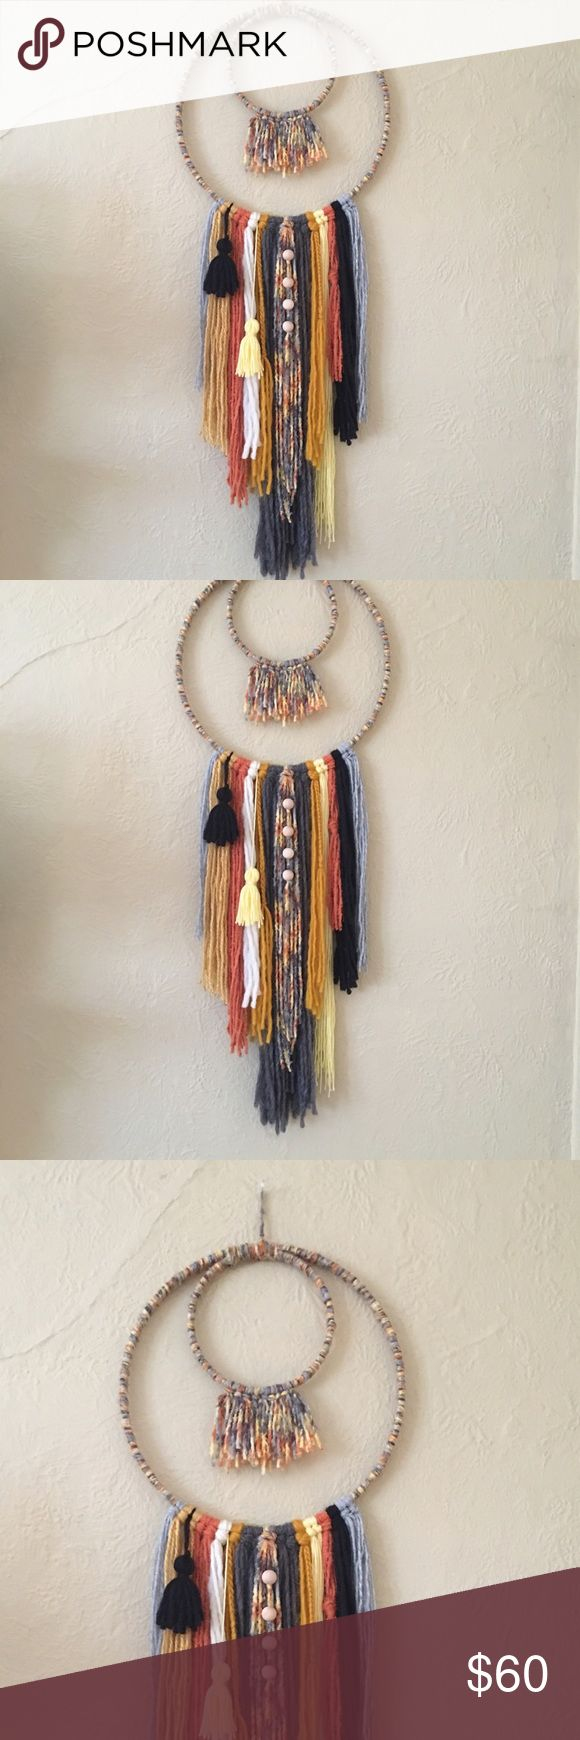 Bright Fire Dream Catcher Style Wall Hanging Handmade by me with careful thought and precision. Created with high quality, super soft yarns and wools. Features shades of gray, orange, yellow and black and is adorned with natural wooden beads and playful tassels. Ready to ship! Measurements: 12 in x approx 33 in Free People Accessories